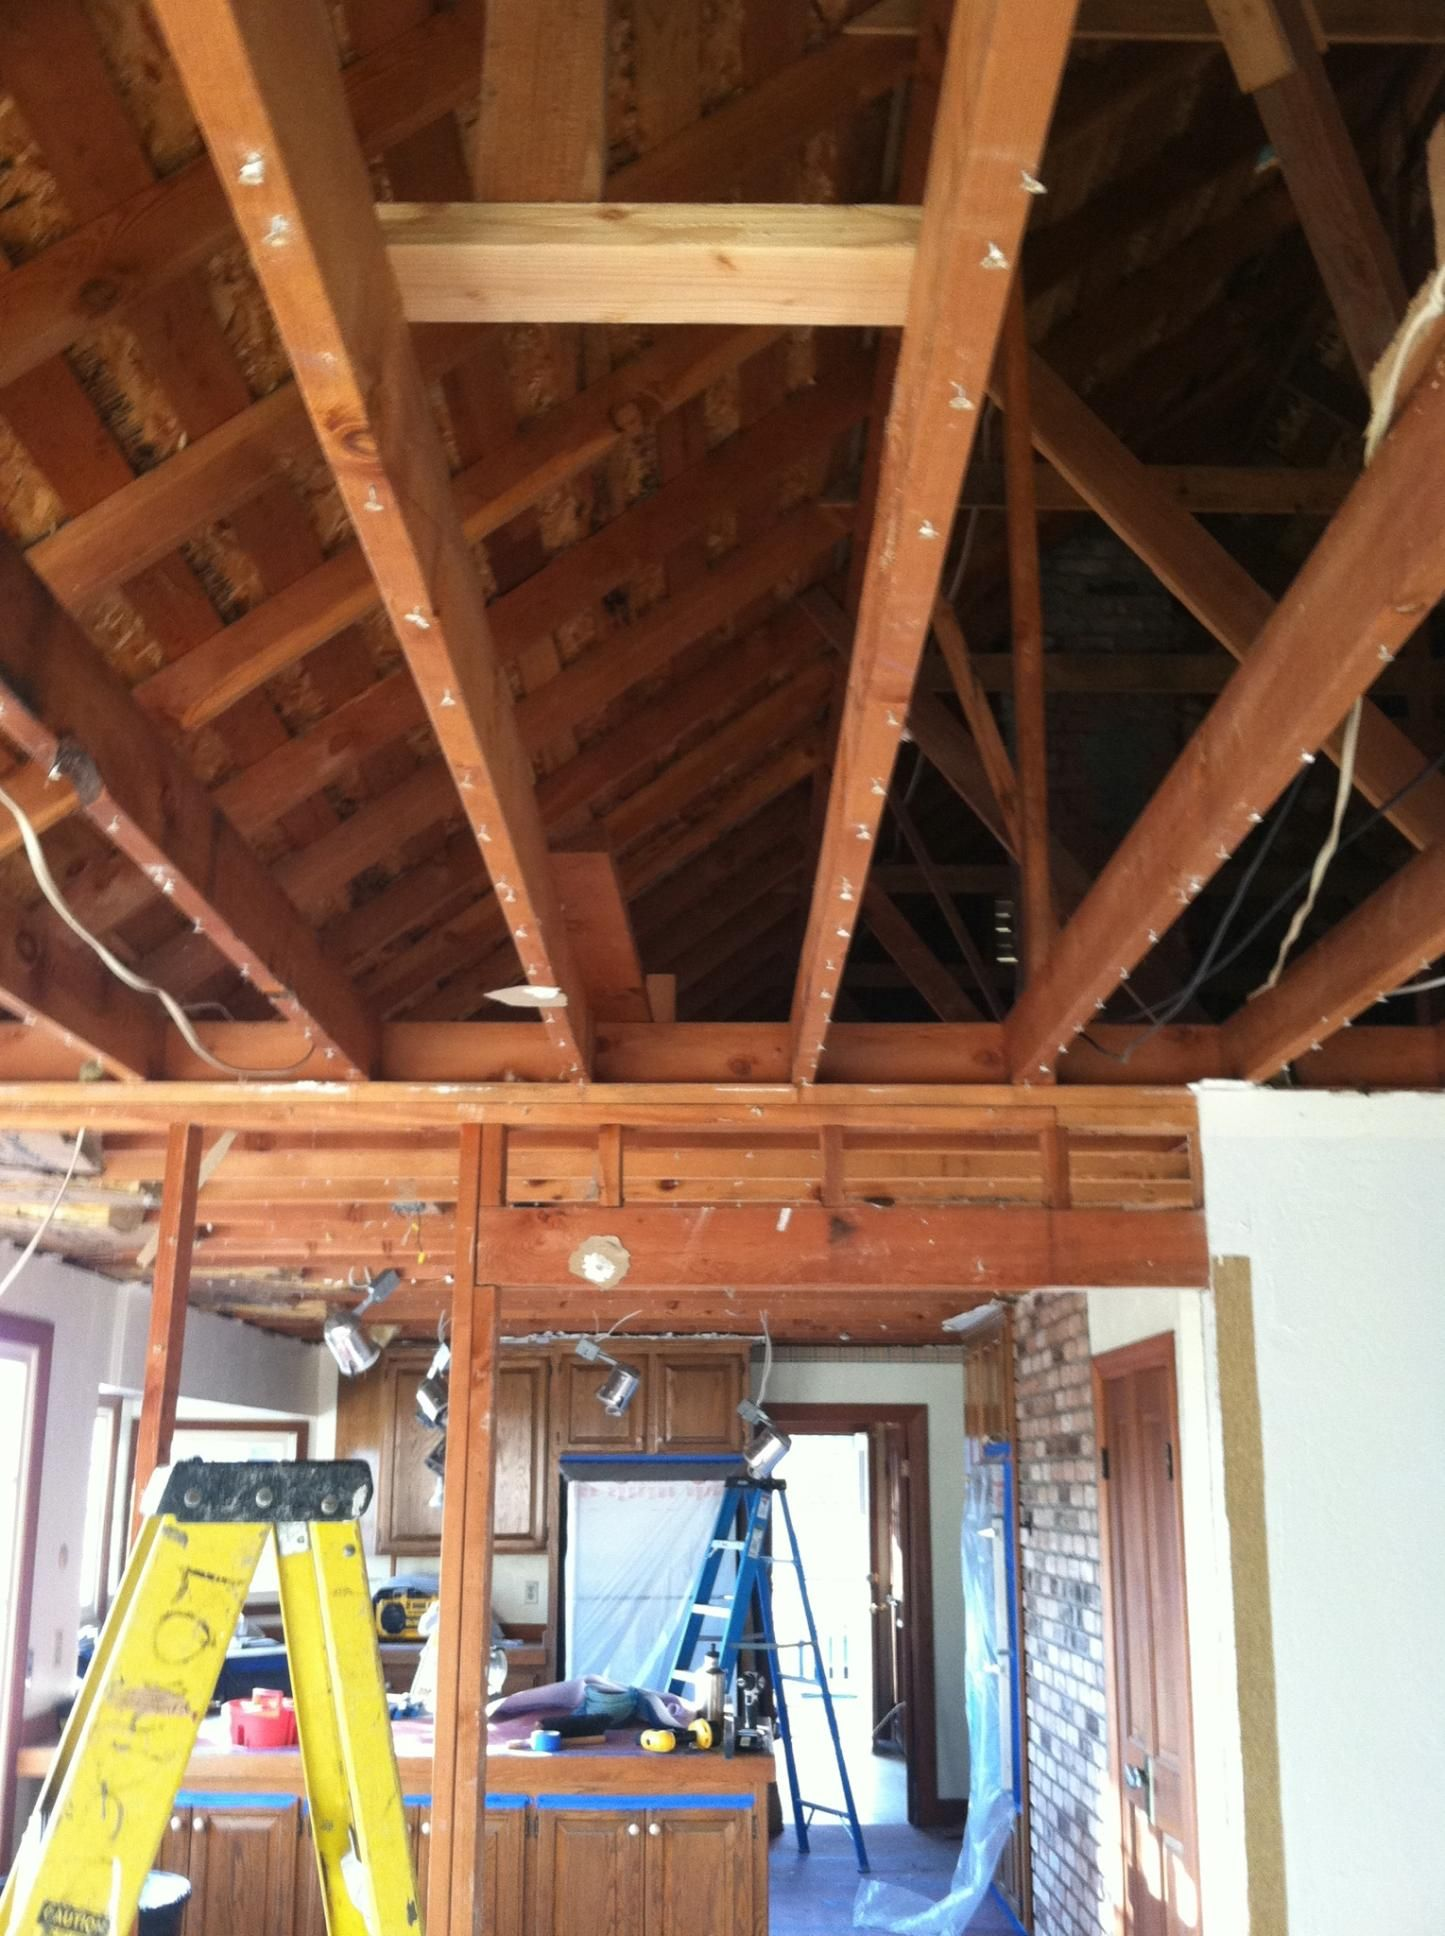 Day 1 Of Raising The Ceilings Original Ceiling Height Was 8 Feet Which Made The Rooms Feel Com Ceiling Height Remodeling Mobile Homes Open Living Room Design